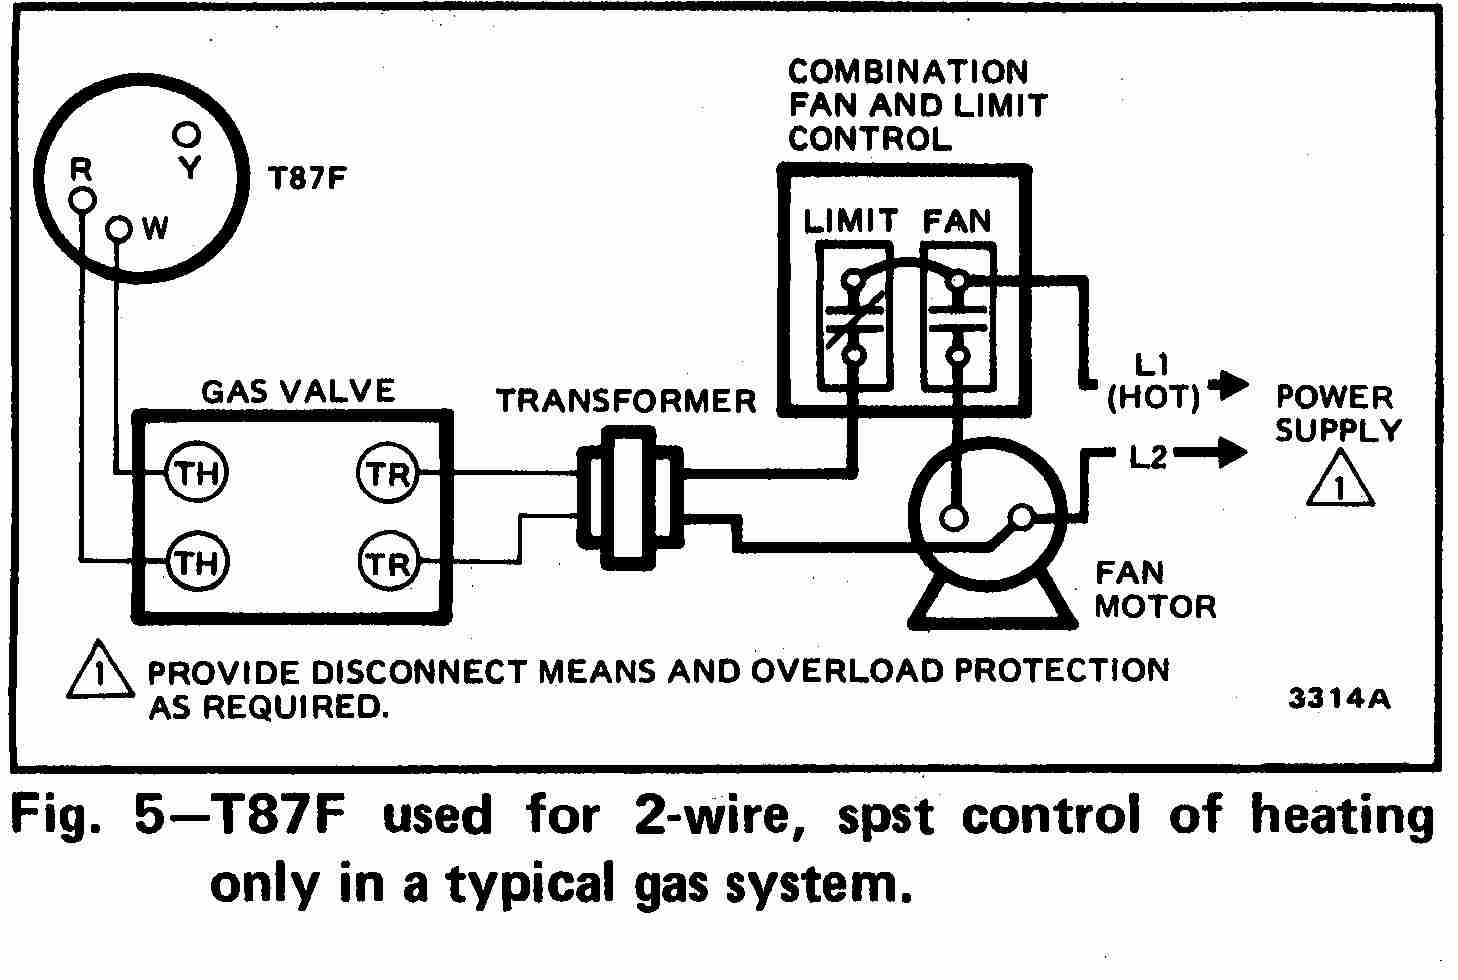 Furnace Gas Valve Wiring Diagram : 32 Wiring Diagram